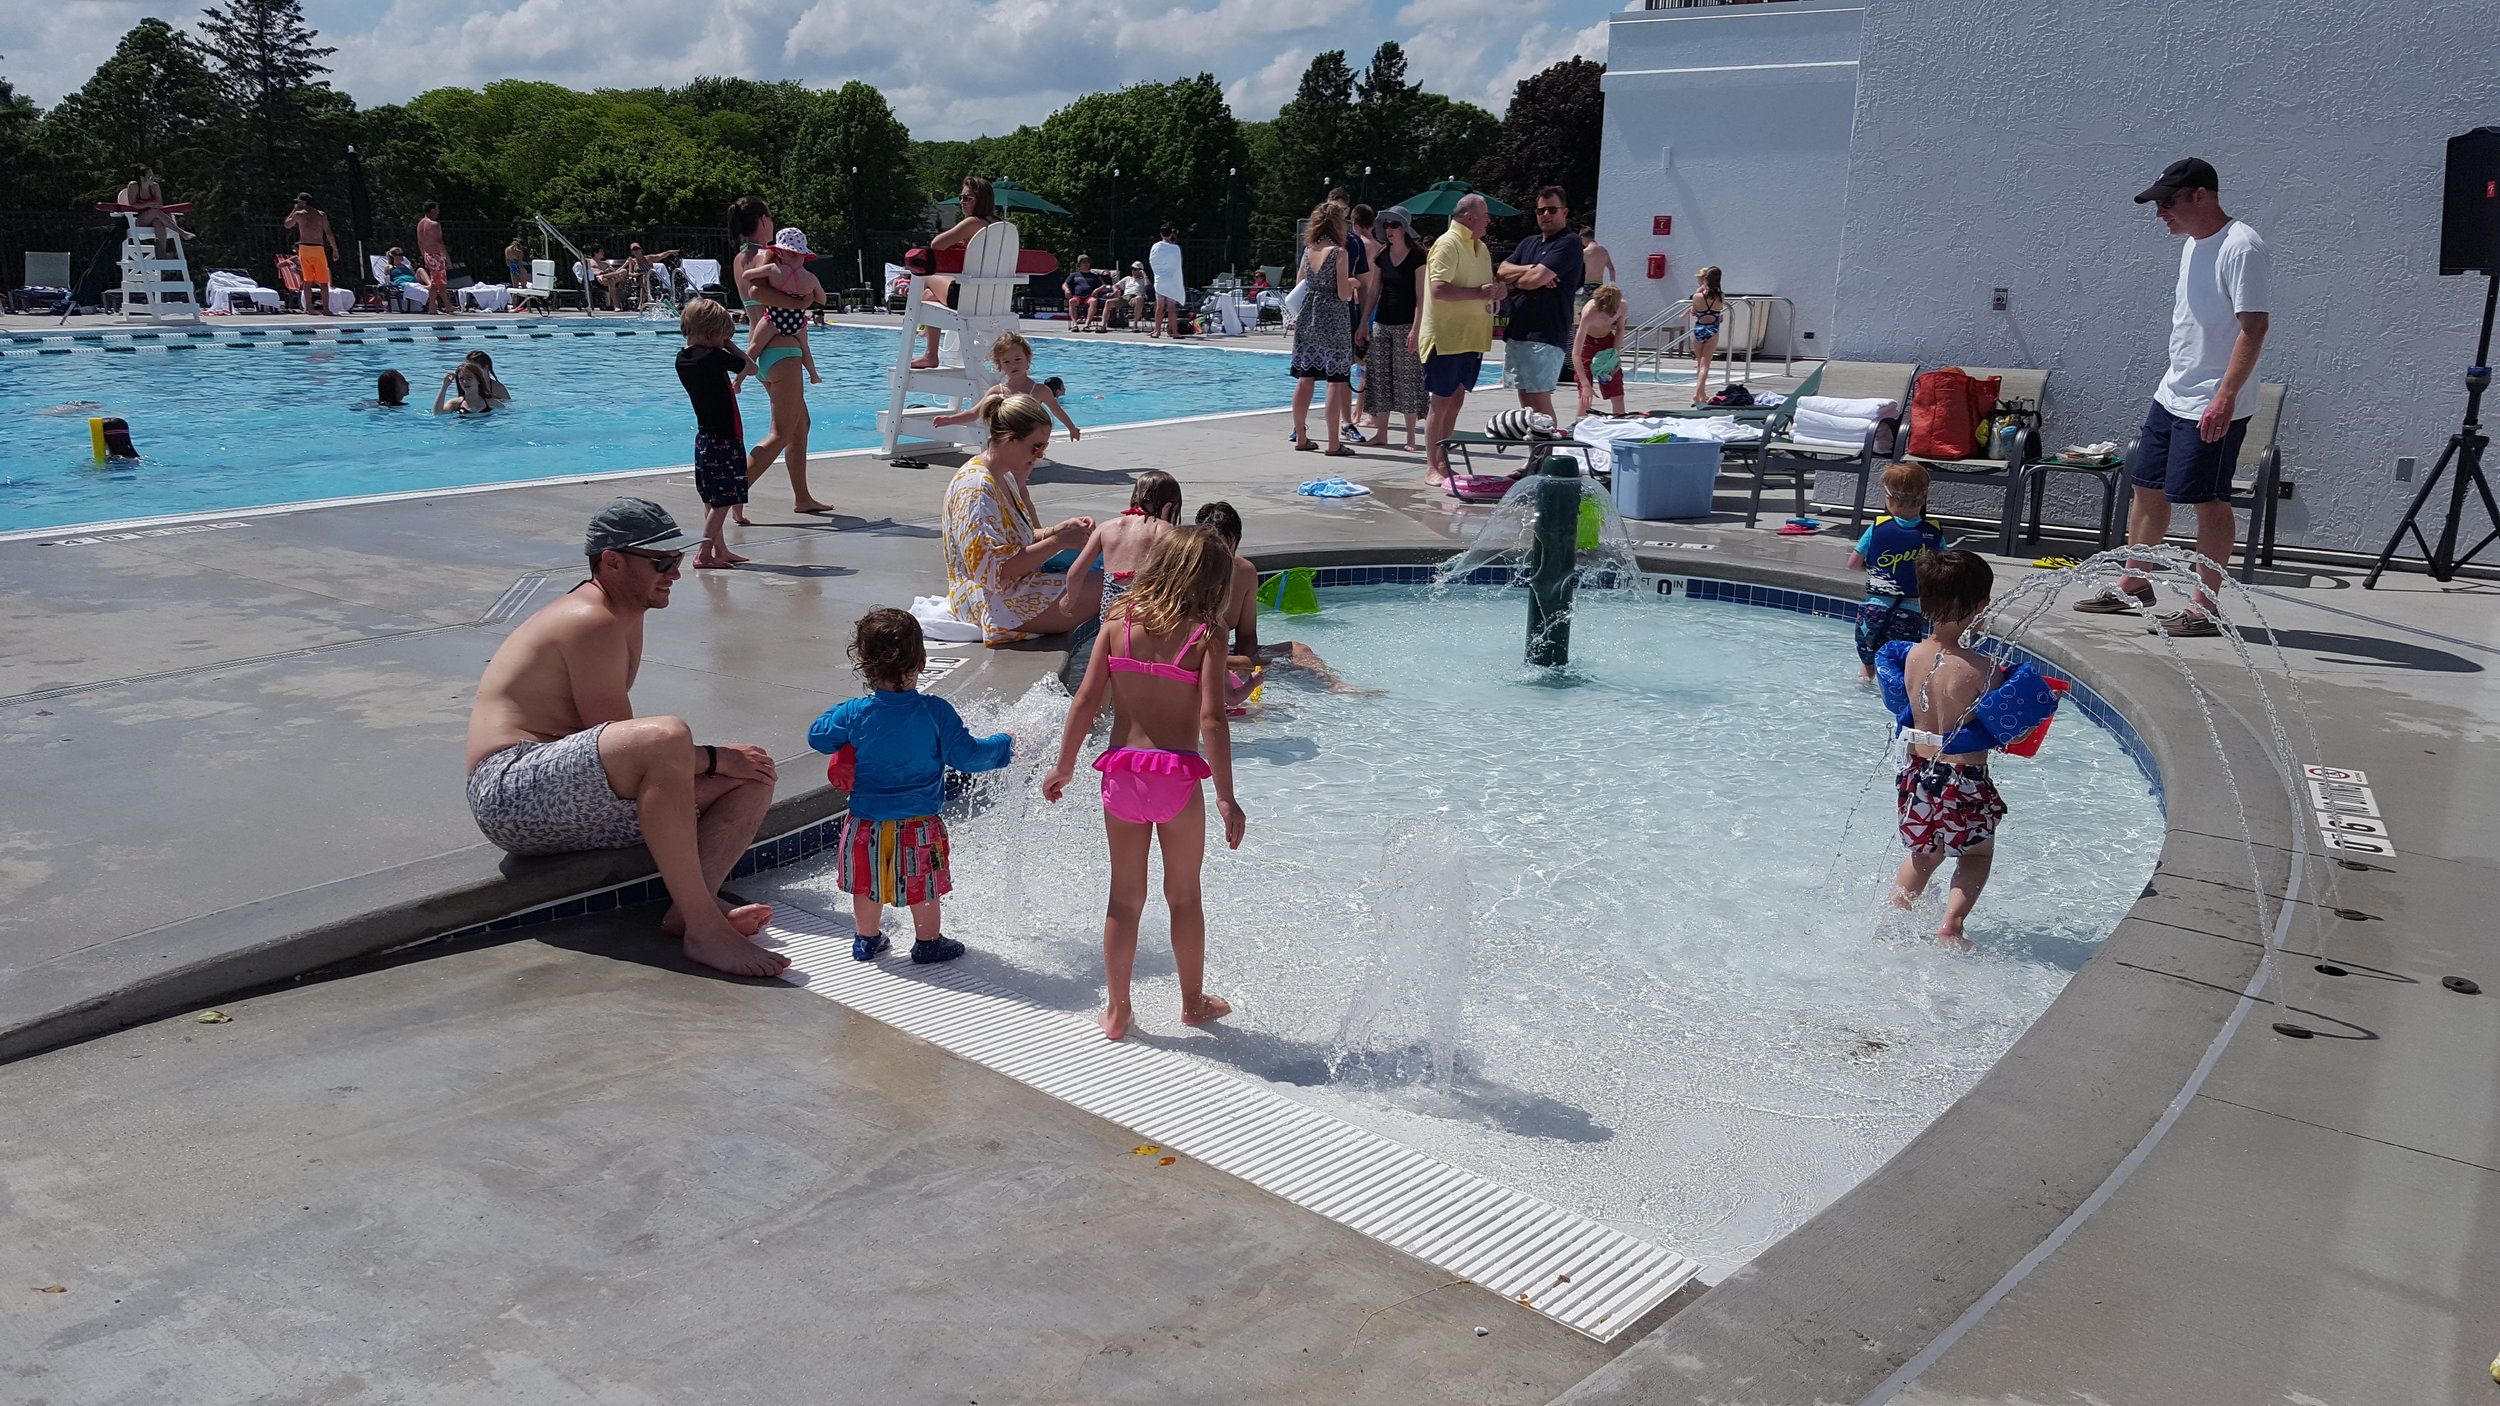 Kids pool area at Maple Bluff Country Club in Madison, WI